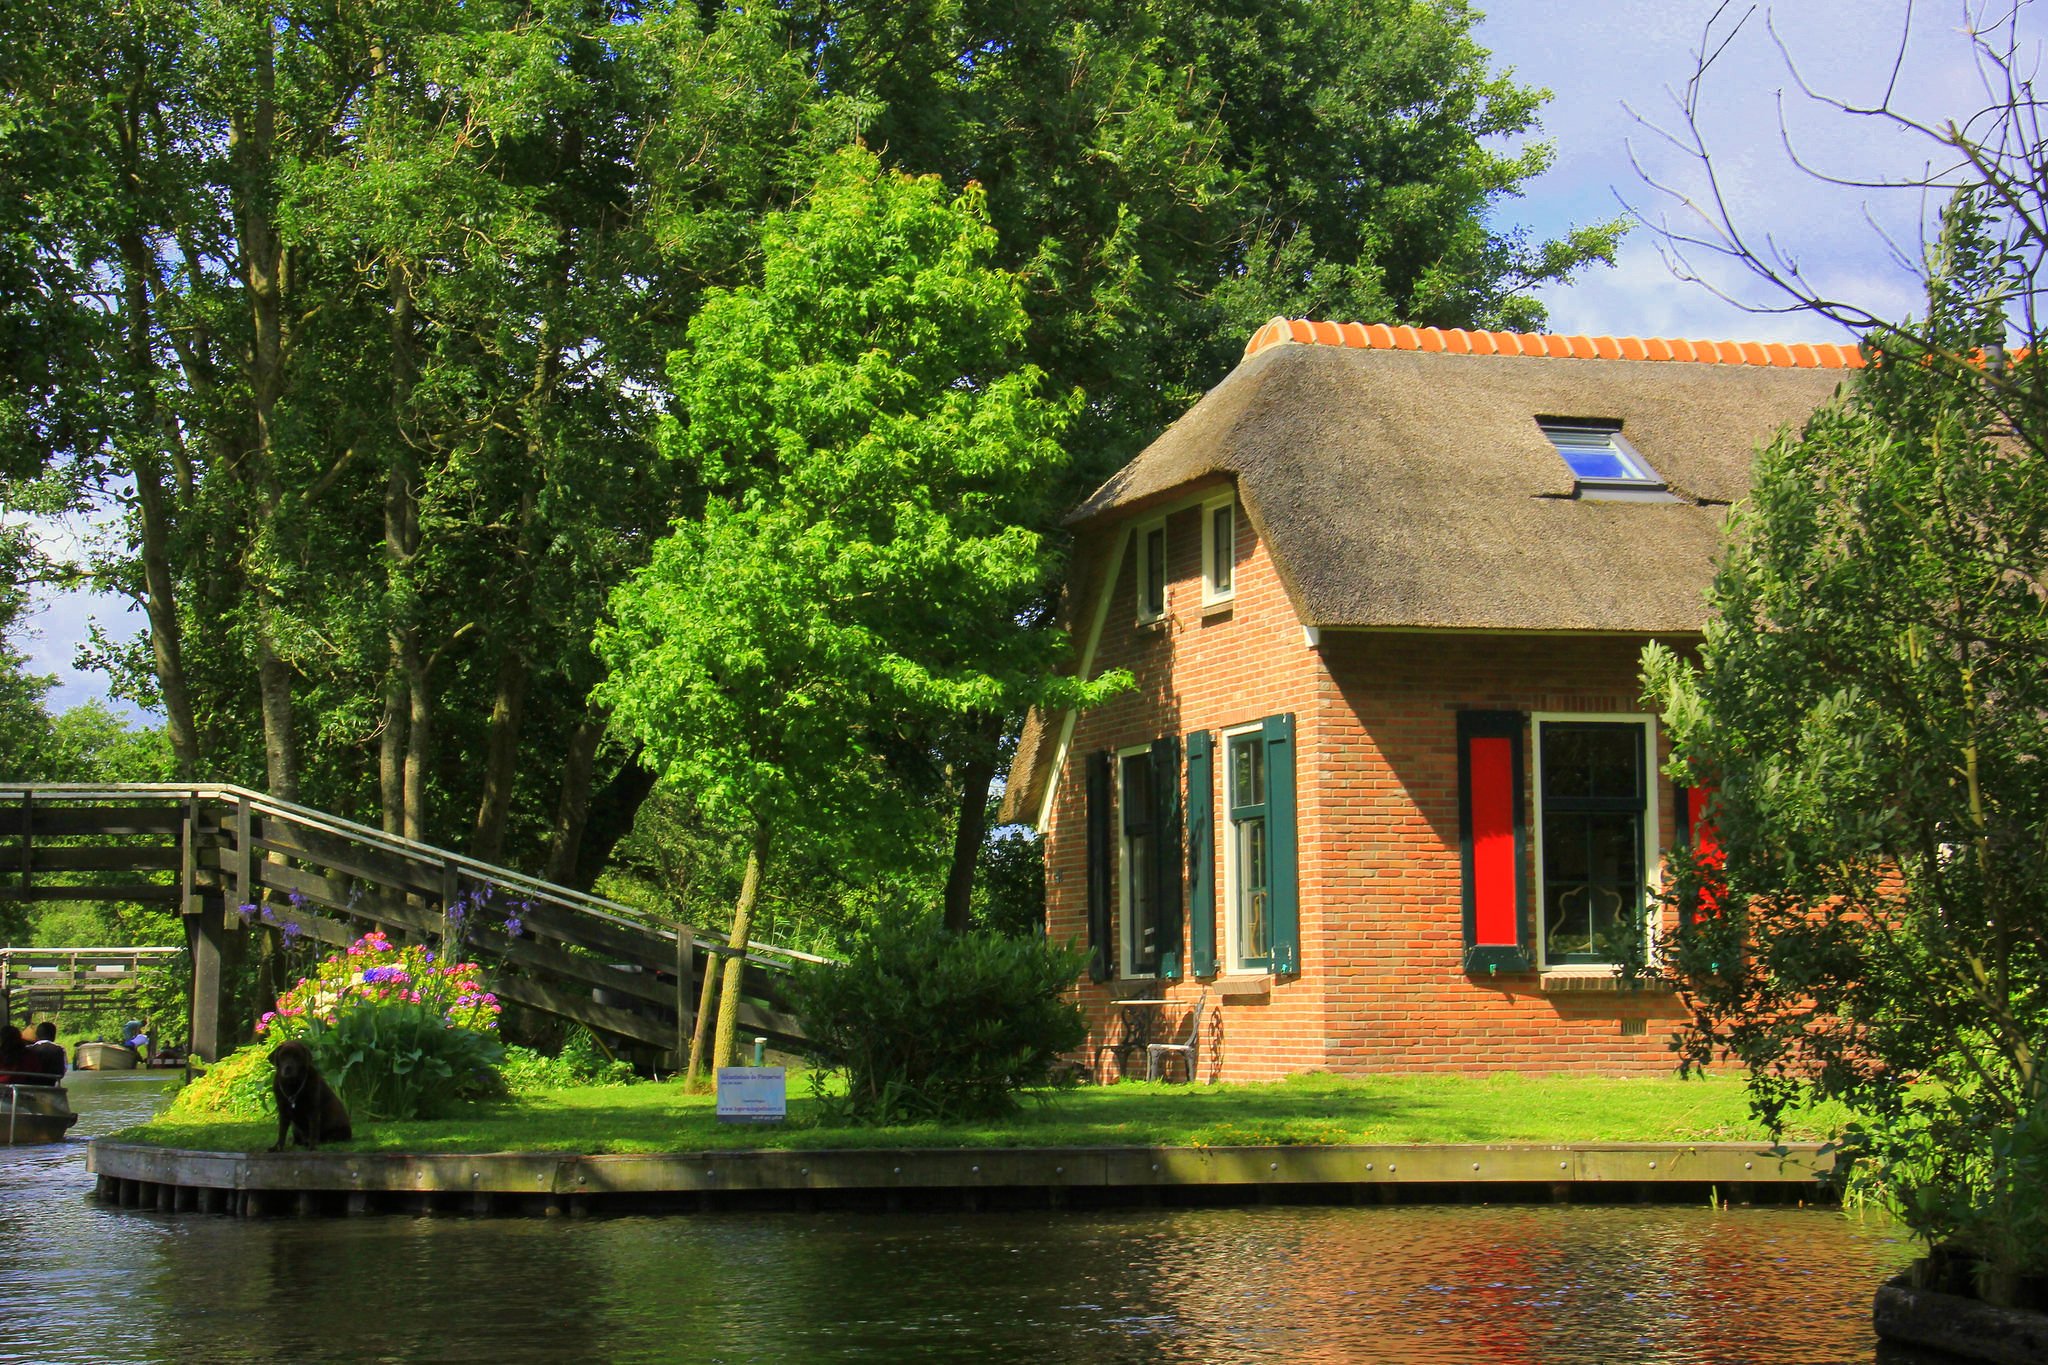 Giethoorn is famous for its waterways